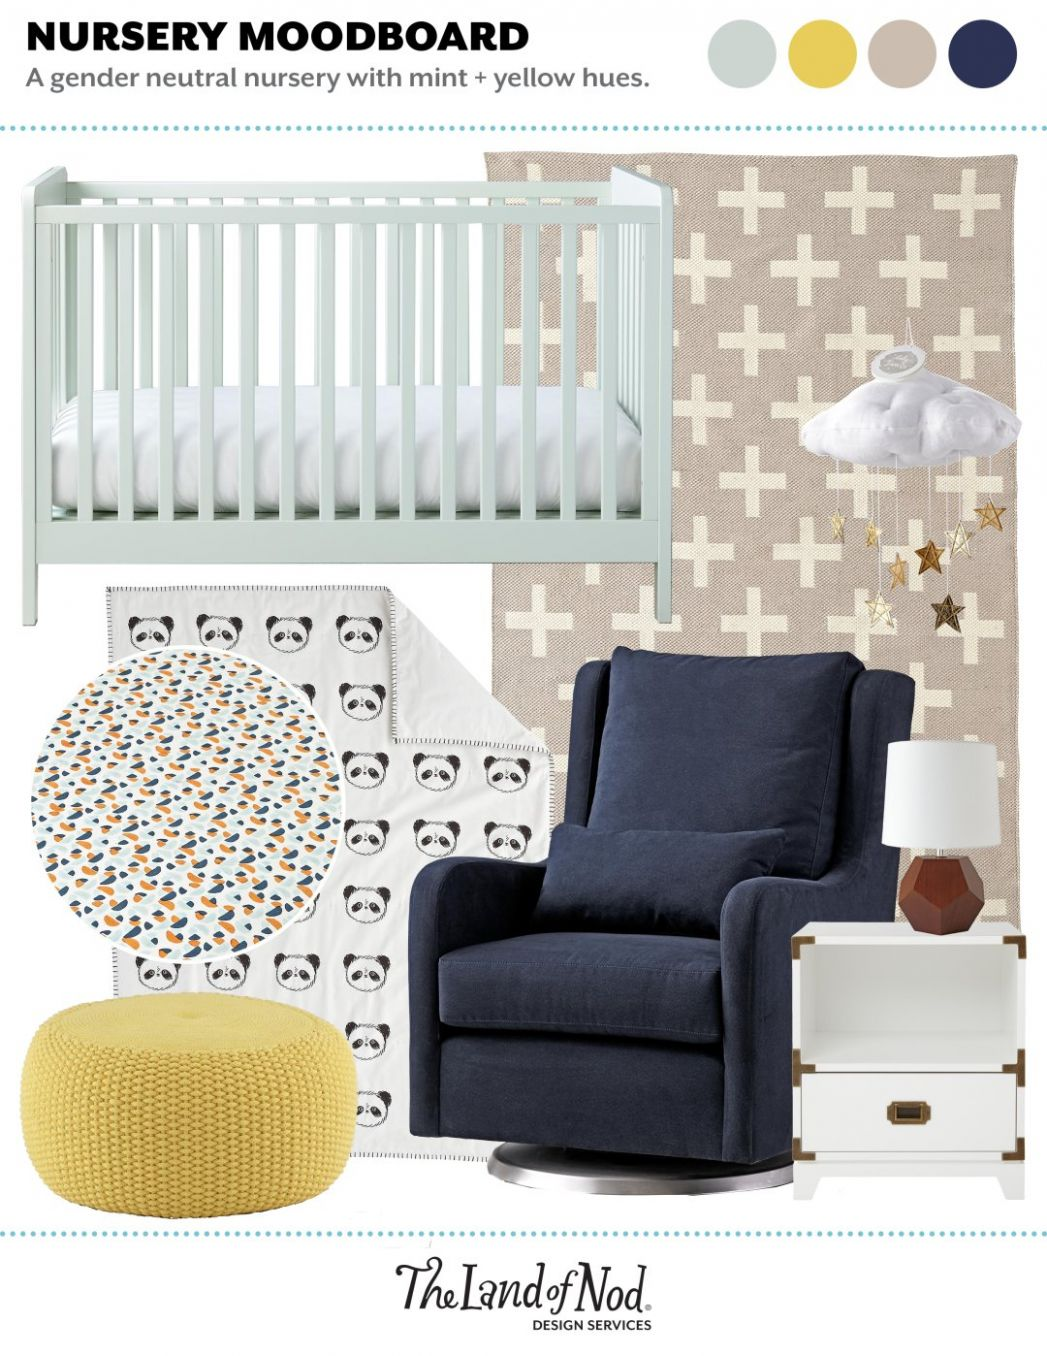 Where to Use a Pouf in a Nursery | Crate&Kids Blog